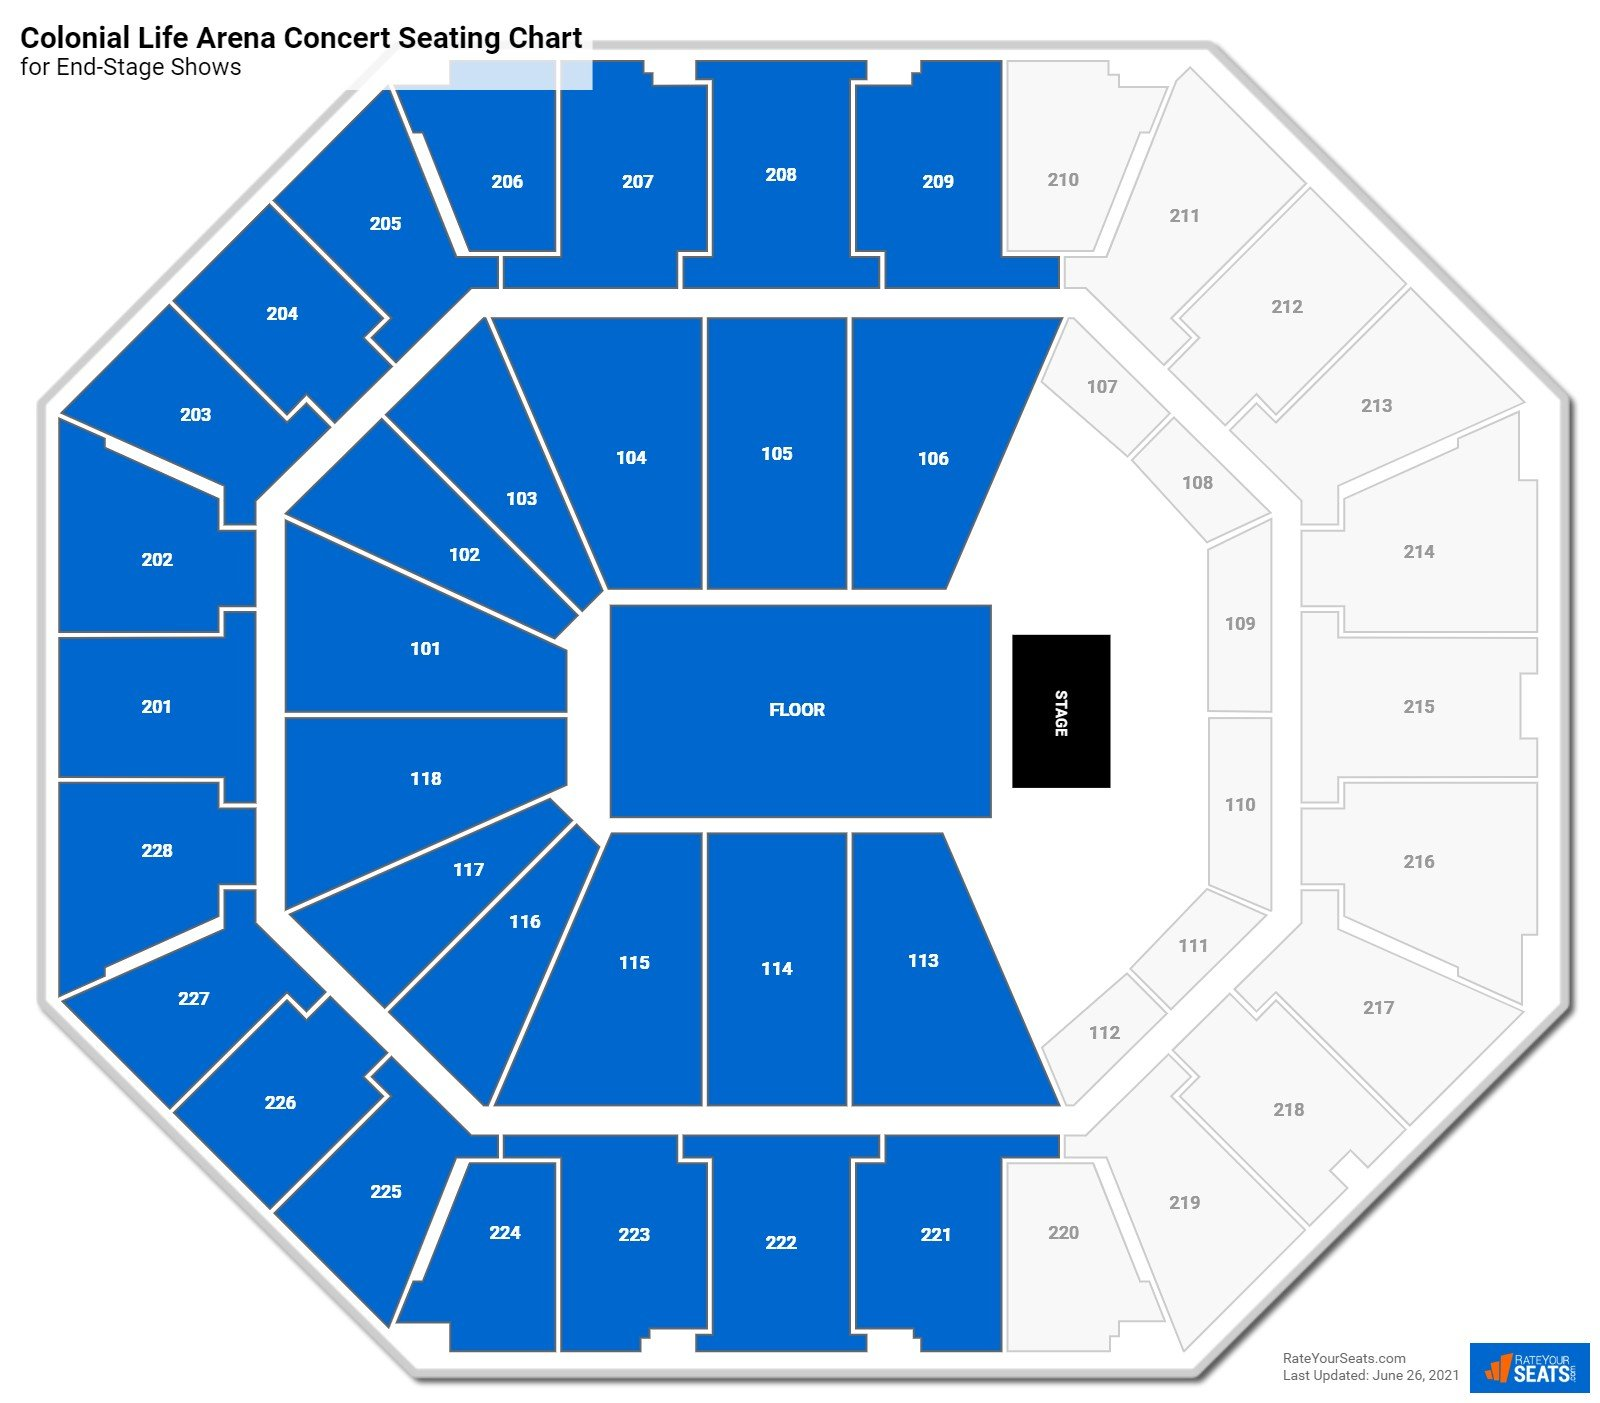 Colonial Life Arena Seating Chart for Concerts